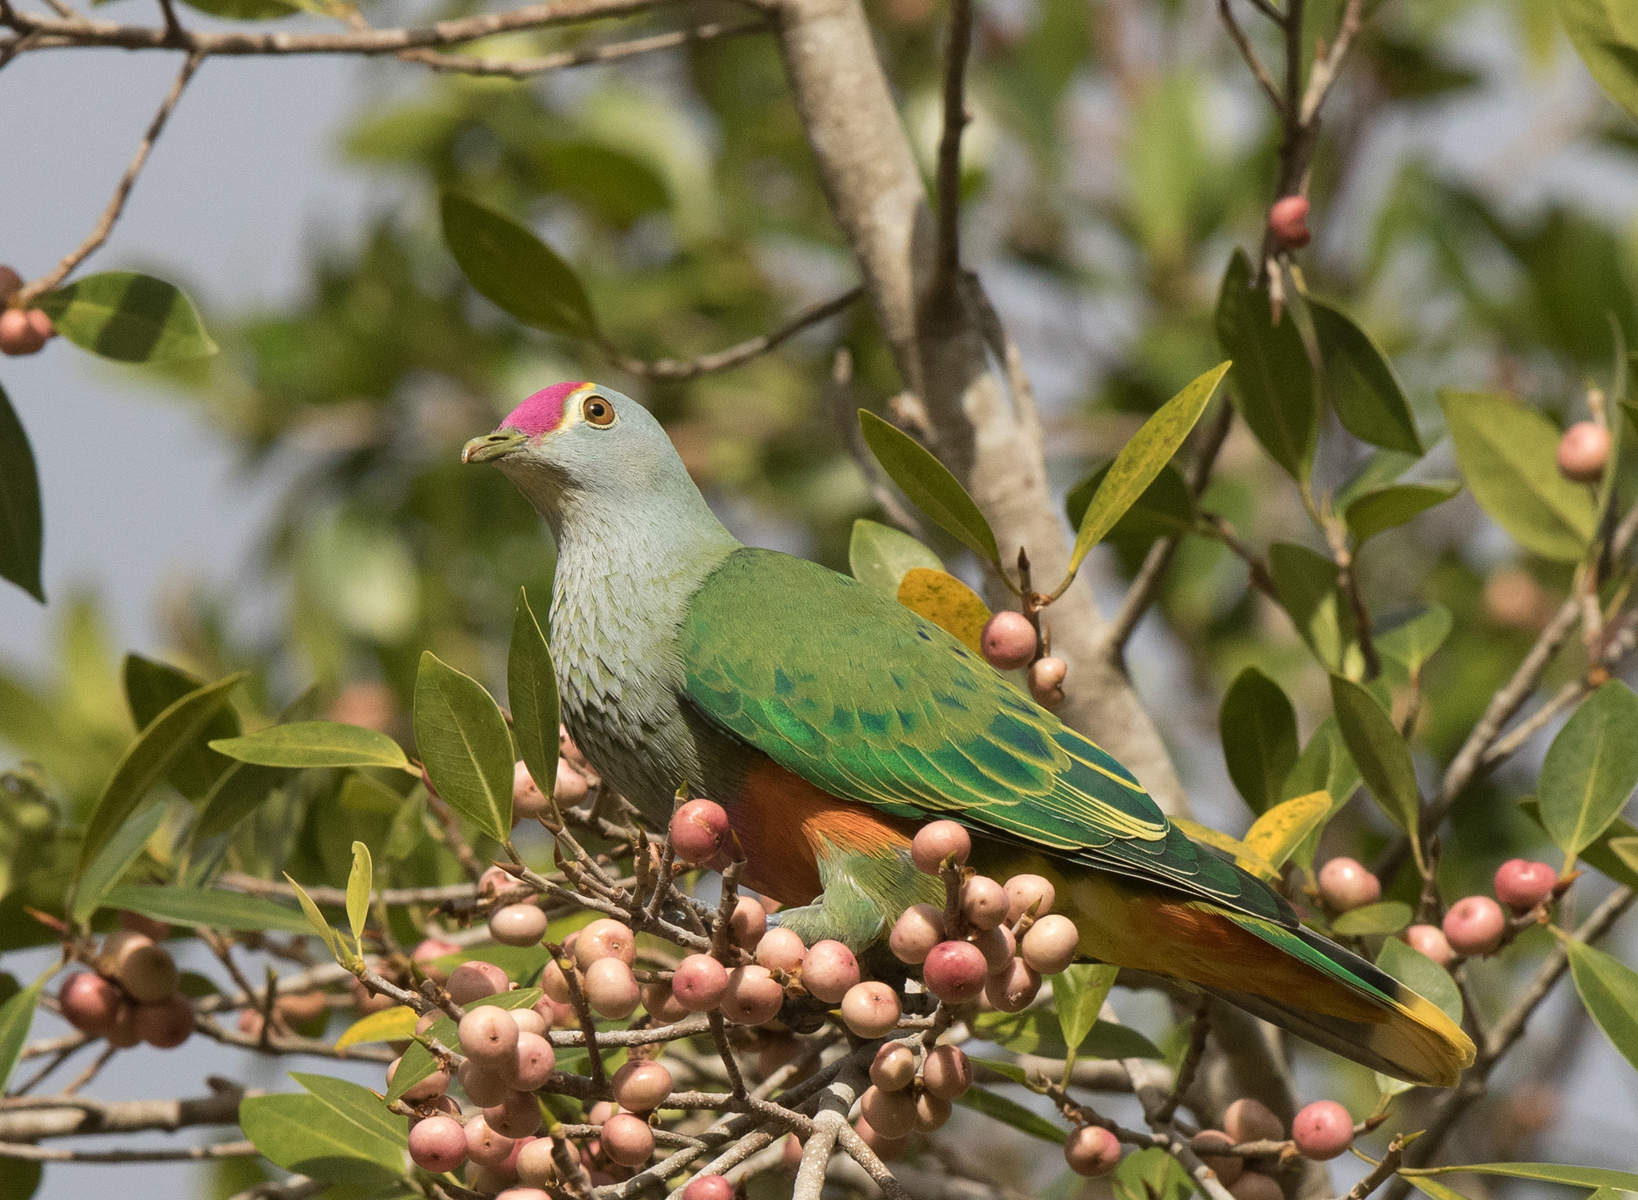 Bird with vibrant green plumage and pink across the top of its head in a tree